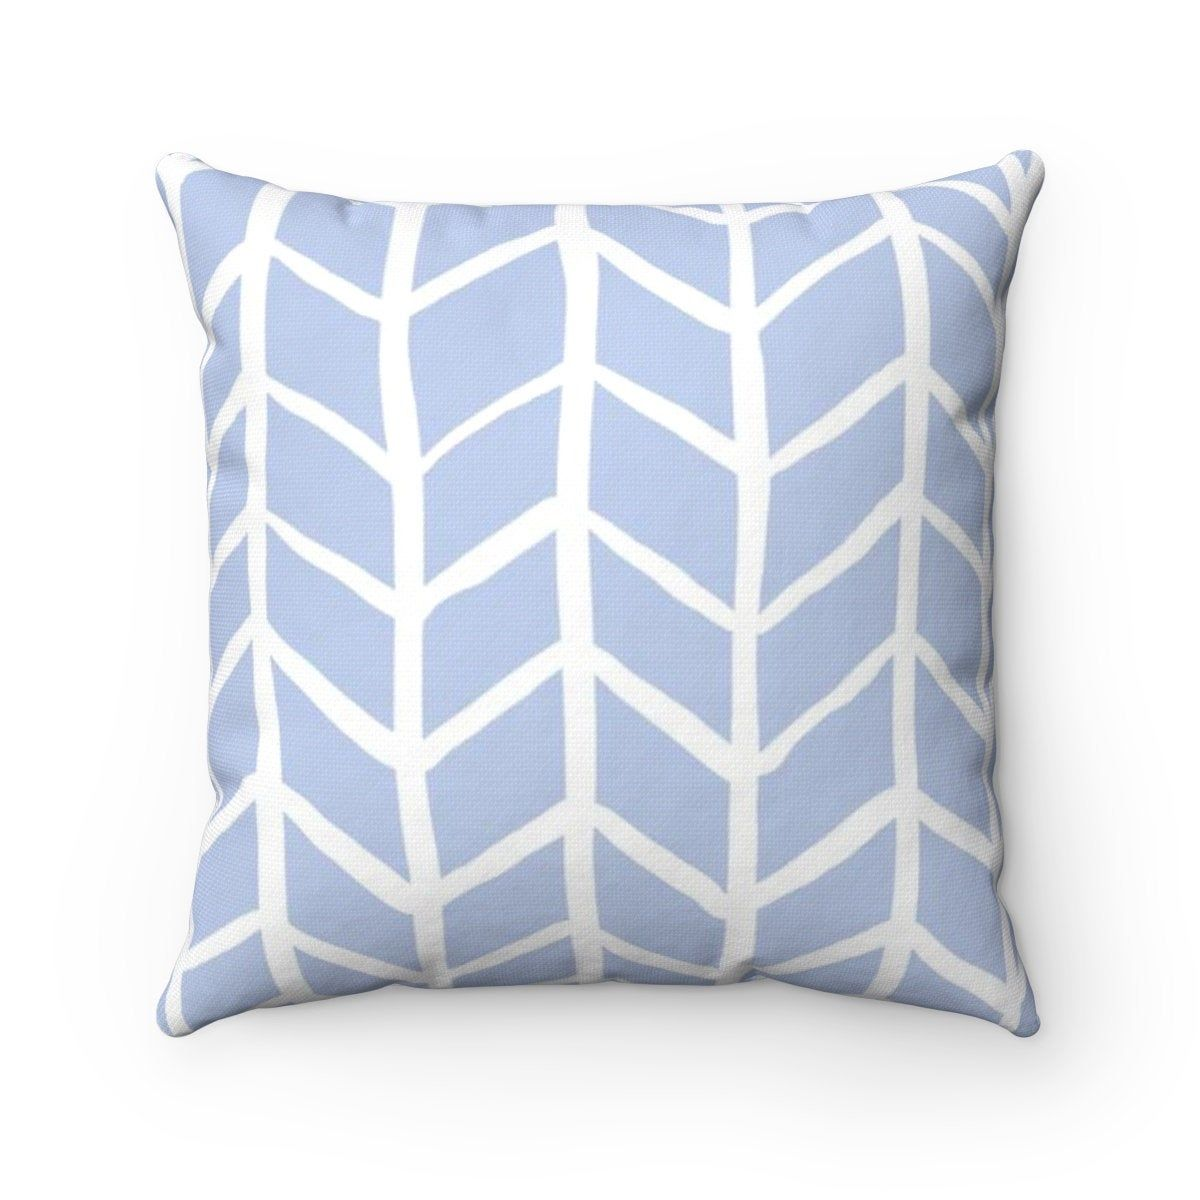 Outdoor Throw Pillow Periwinkle Blue Outdoor Pillow Periwinkle Herringbone Patio Cushion By Outdoor Throw Pillows Blue Outdoor Pillows Yellow Throw Pillows